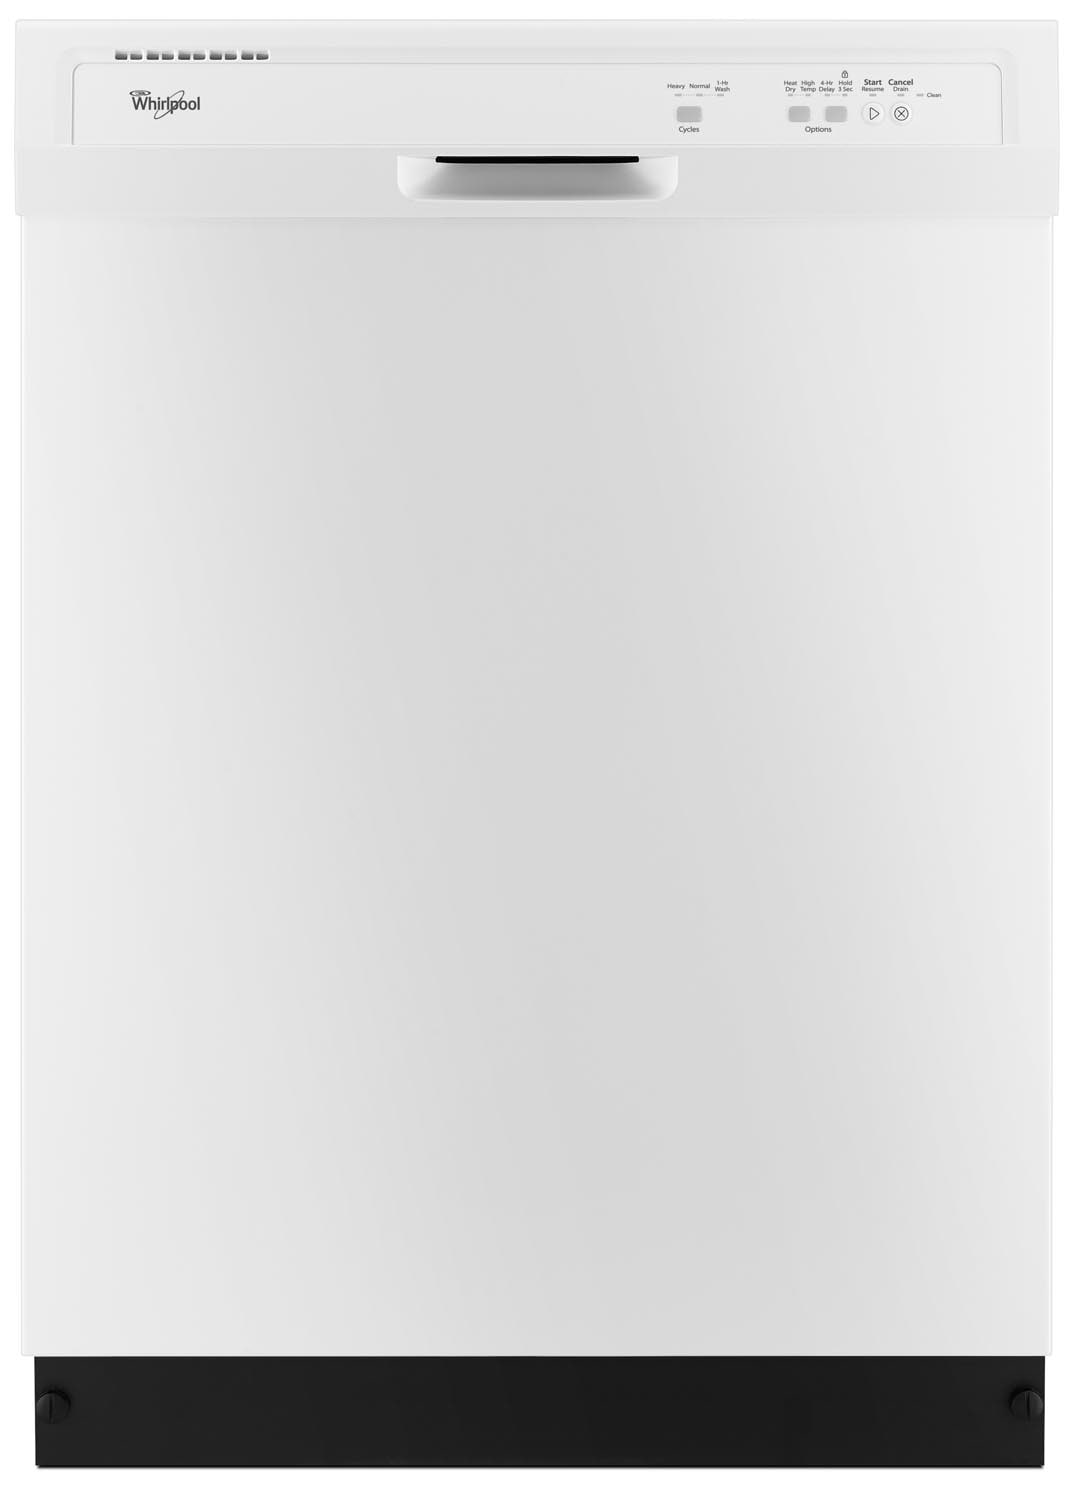 Clean-Up - Whirlpool White Dishwasher - WDF320PADW